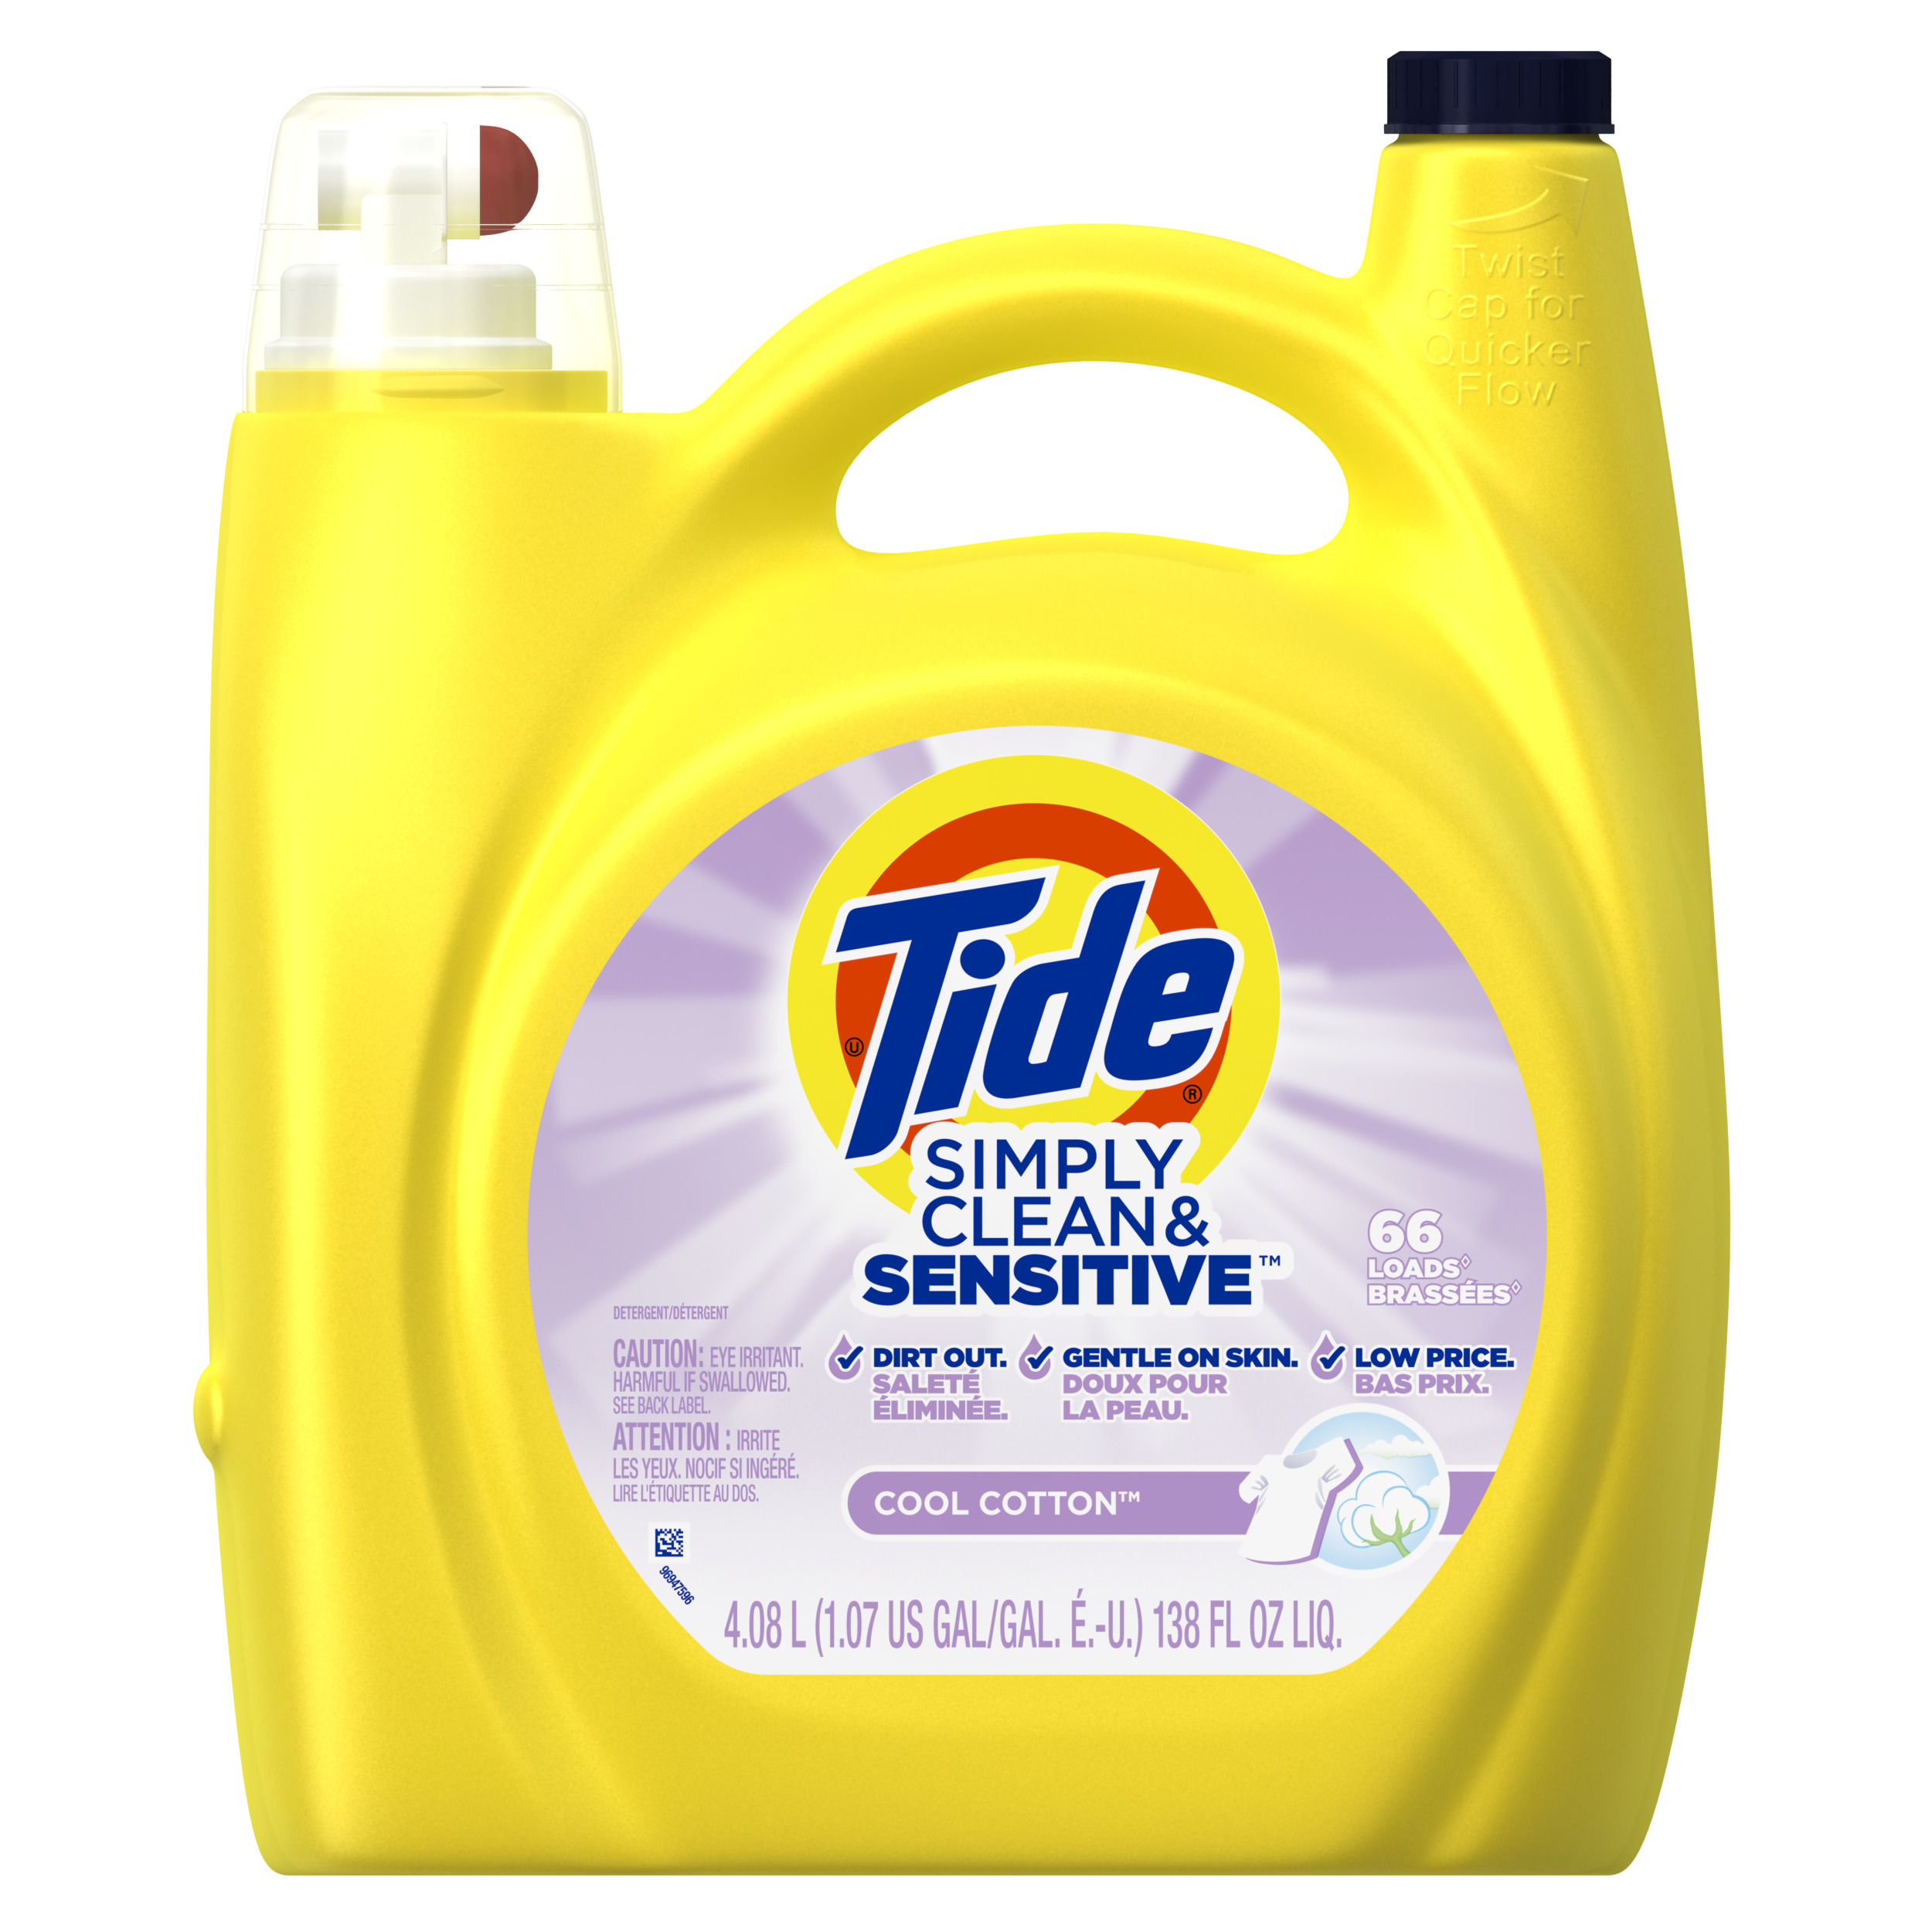 Tide Simply Clean & Sensitive HE Liquid Laundry Detergent, Cool Cotton Scent, 66 Loads 138 Oz